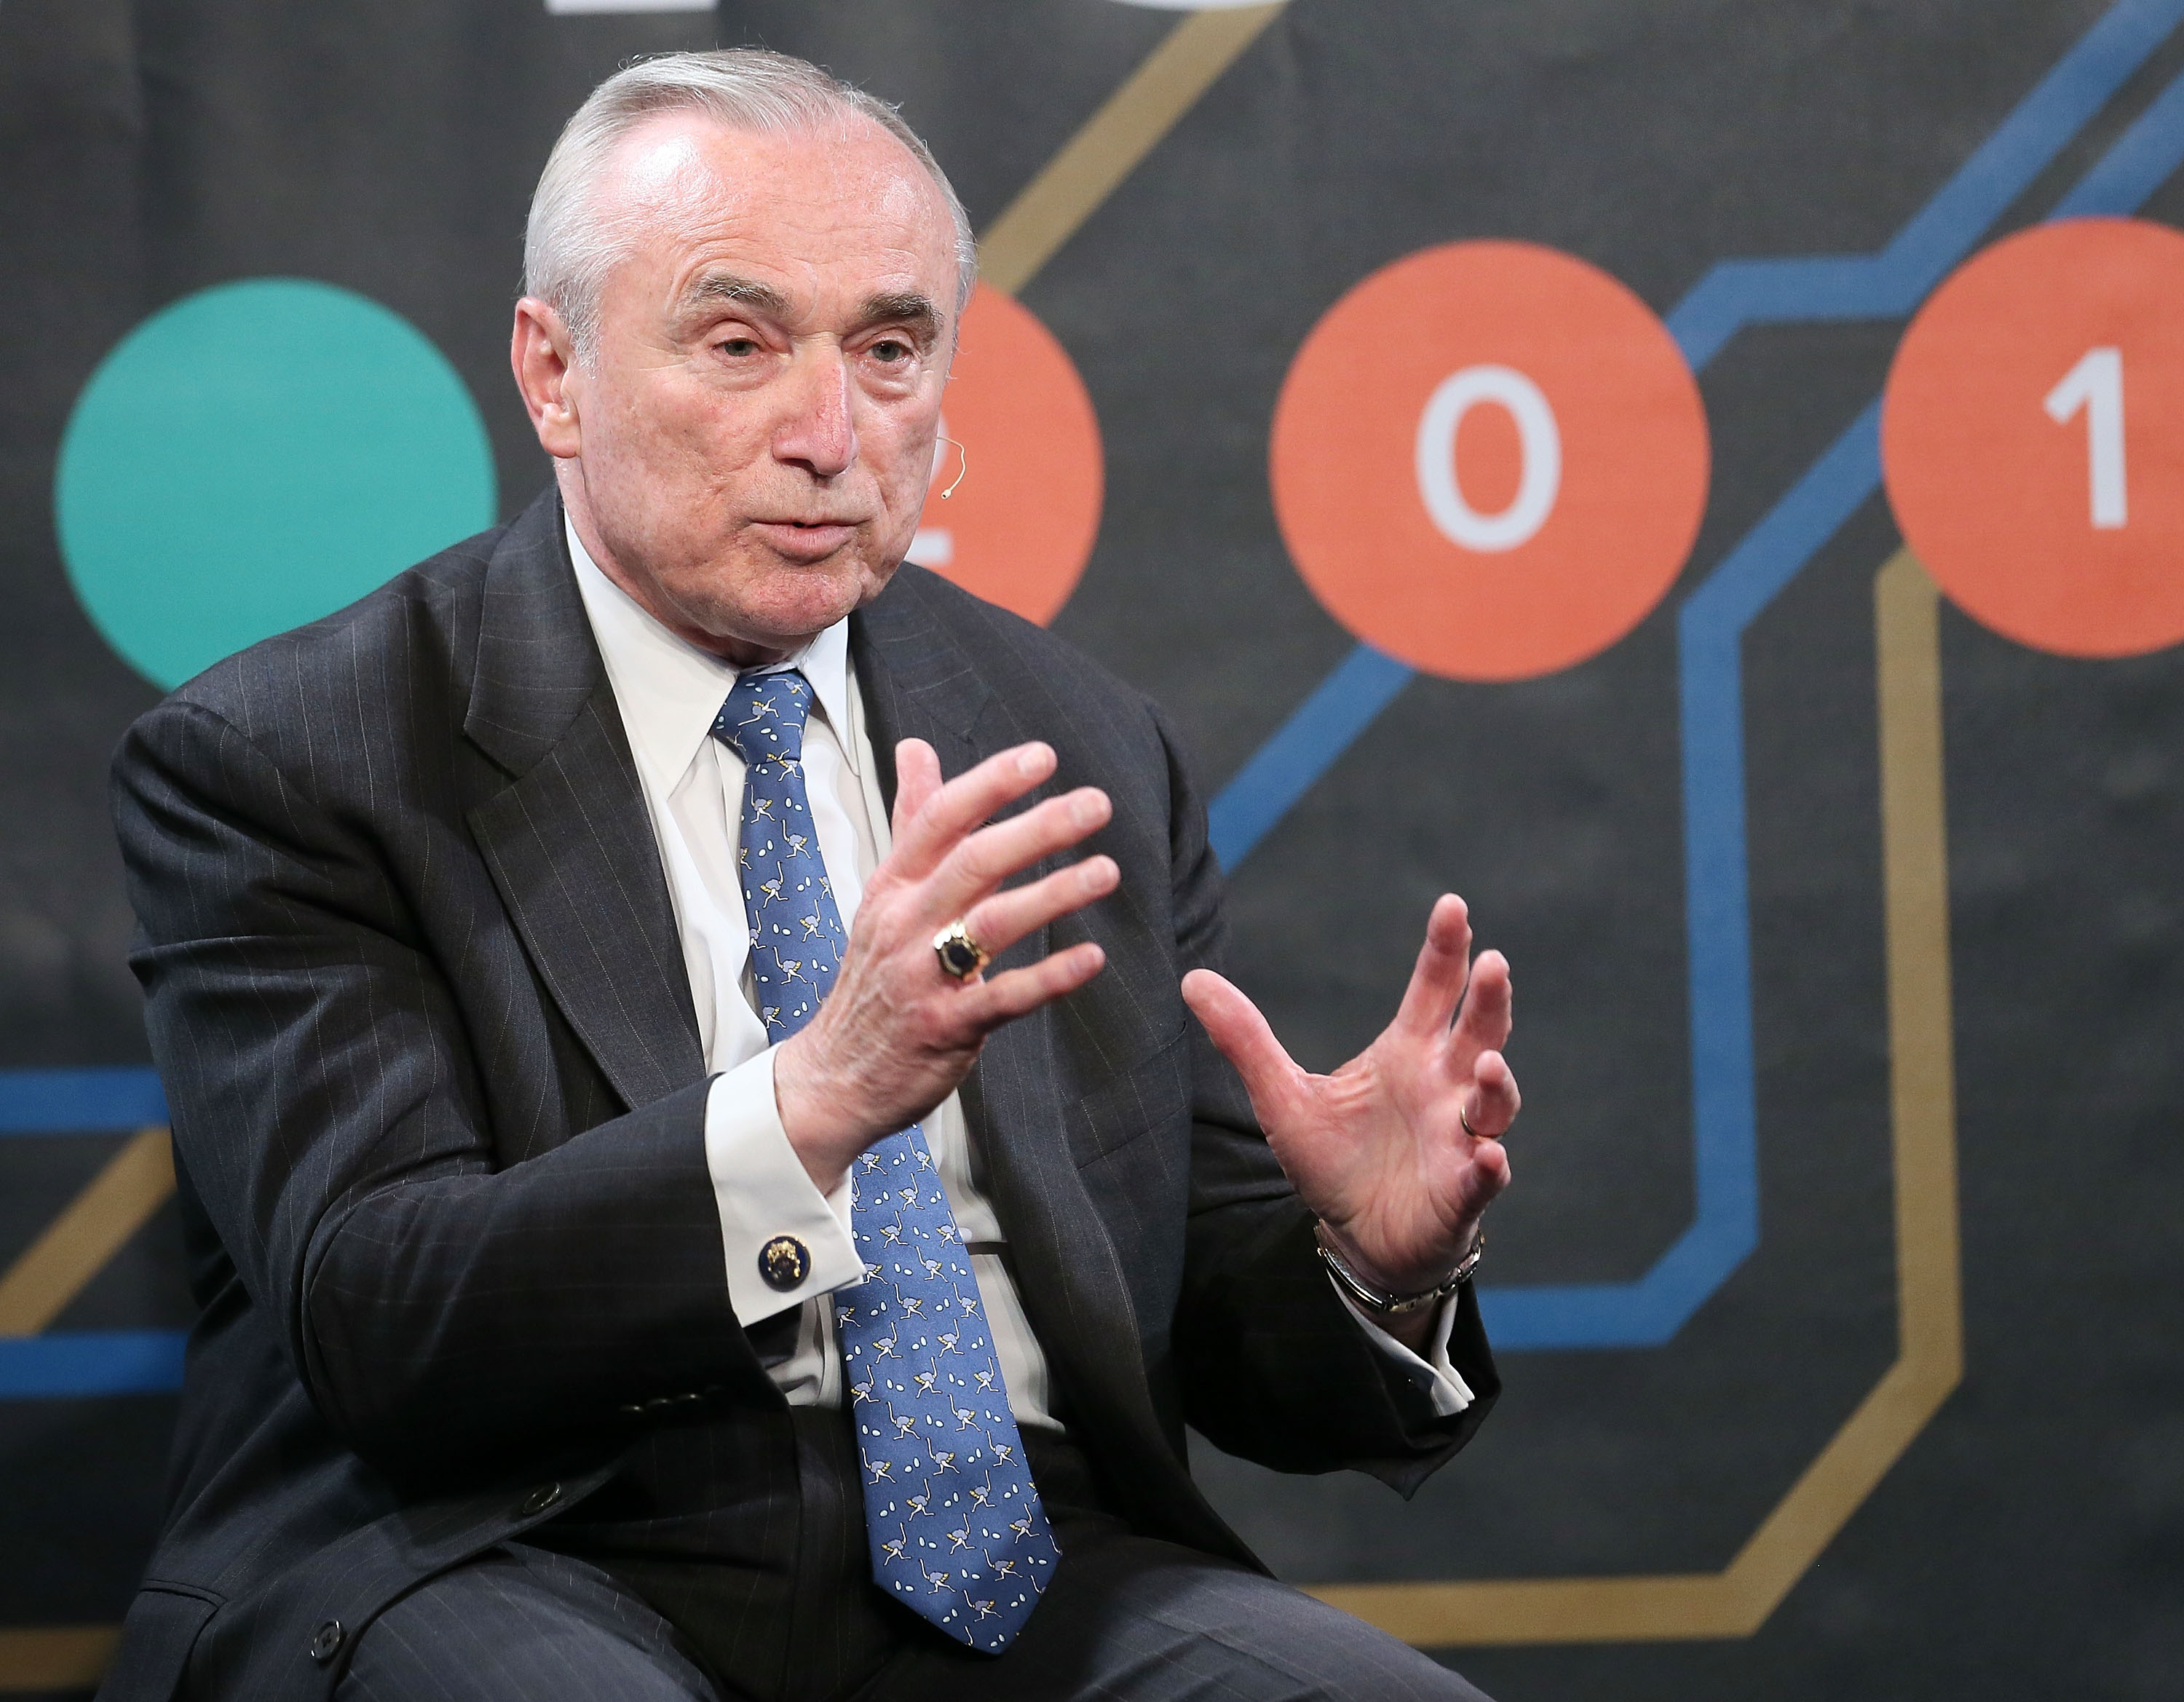 New York City Police Commissioner William Bratton speaks on the 'On Policing in New York - And What Made This Year Different' Panel at the 2015 New York Ideas Forum in New York City on May 20, 2015.